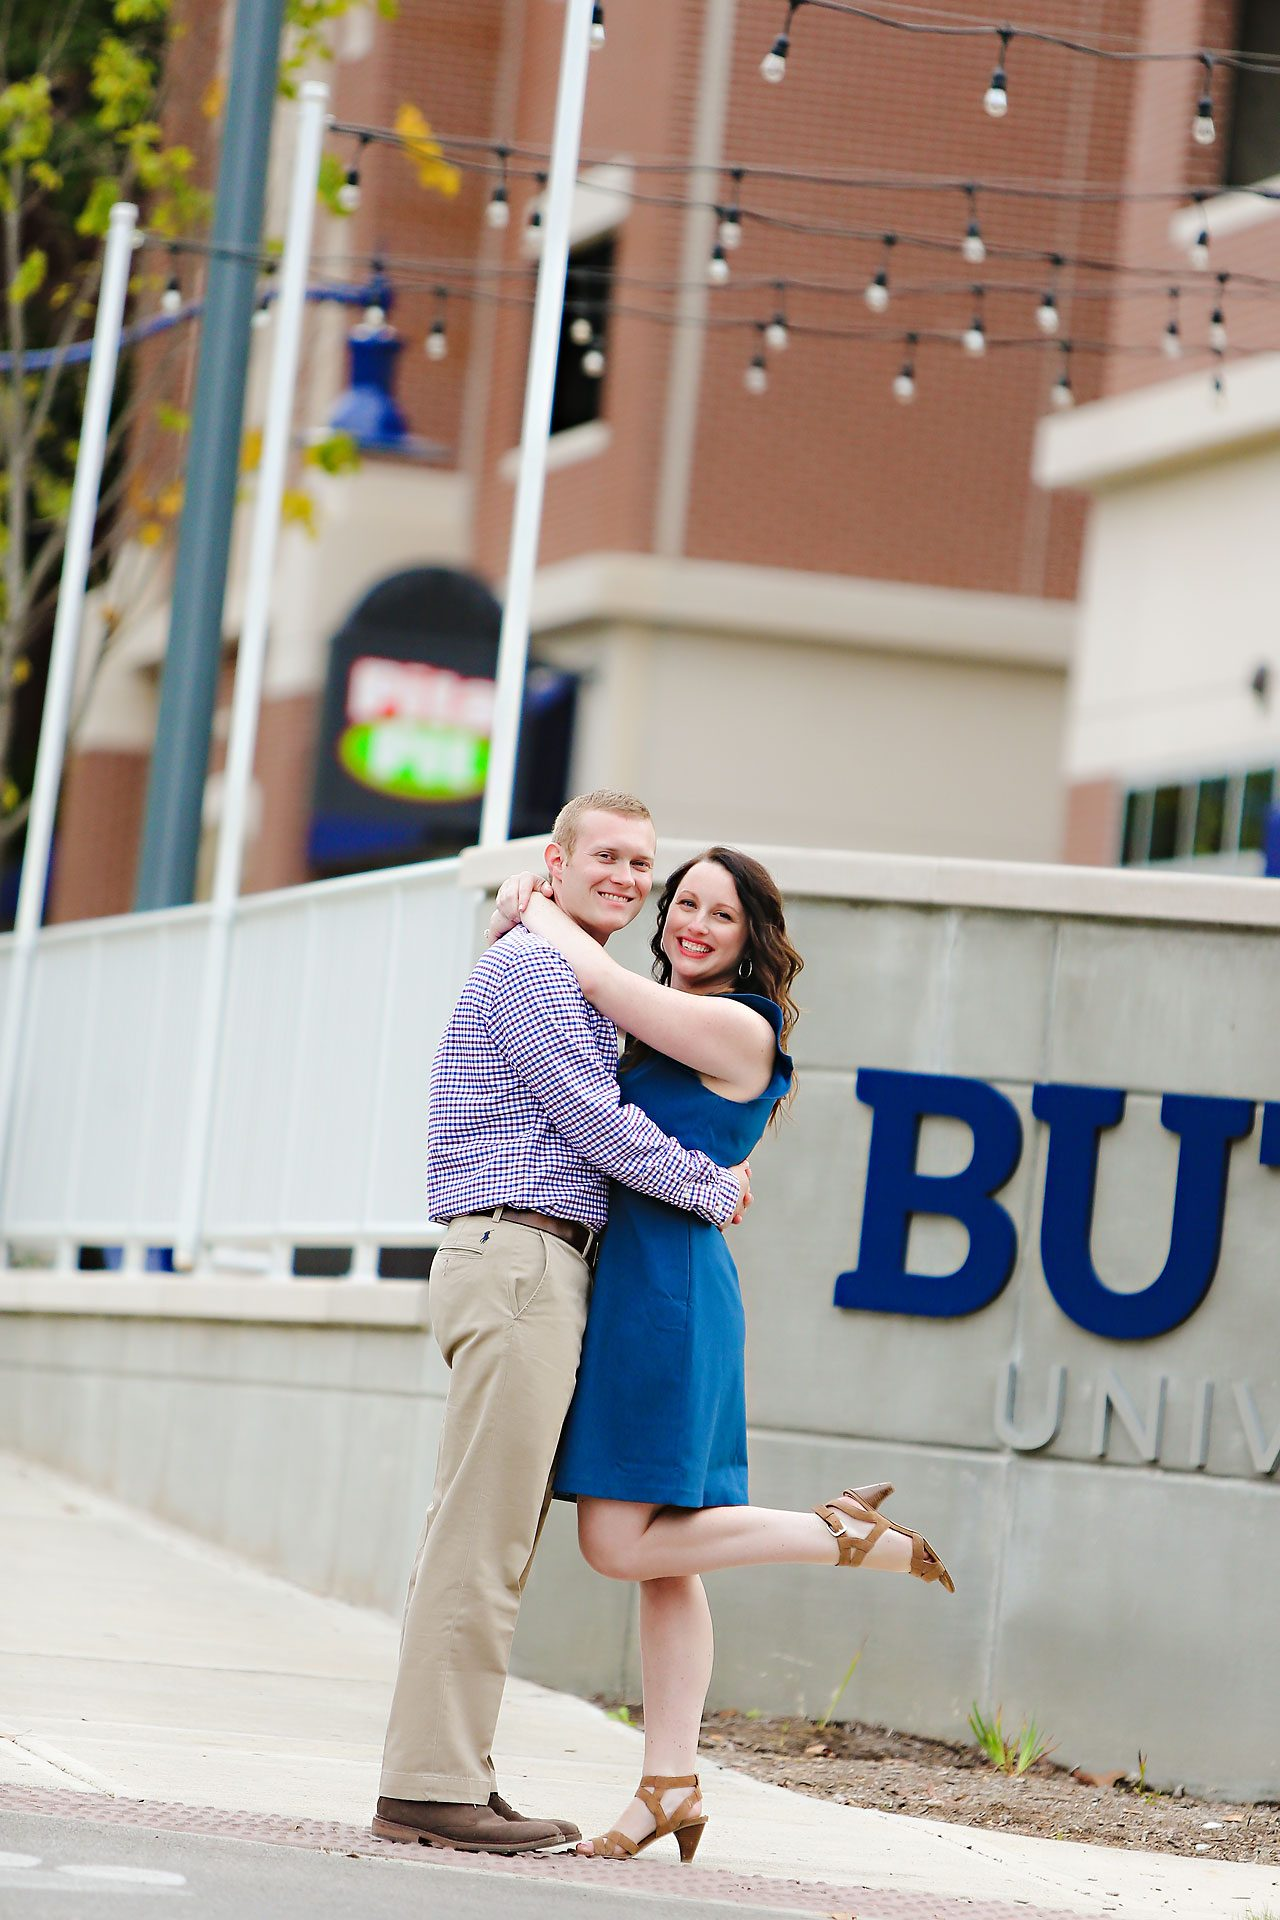 stephanie zach butler university engagement session 049